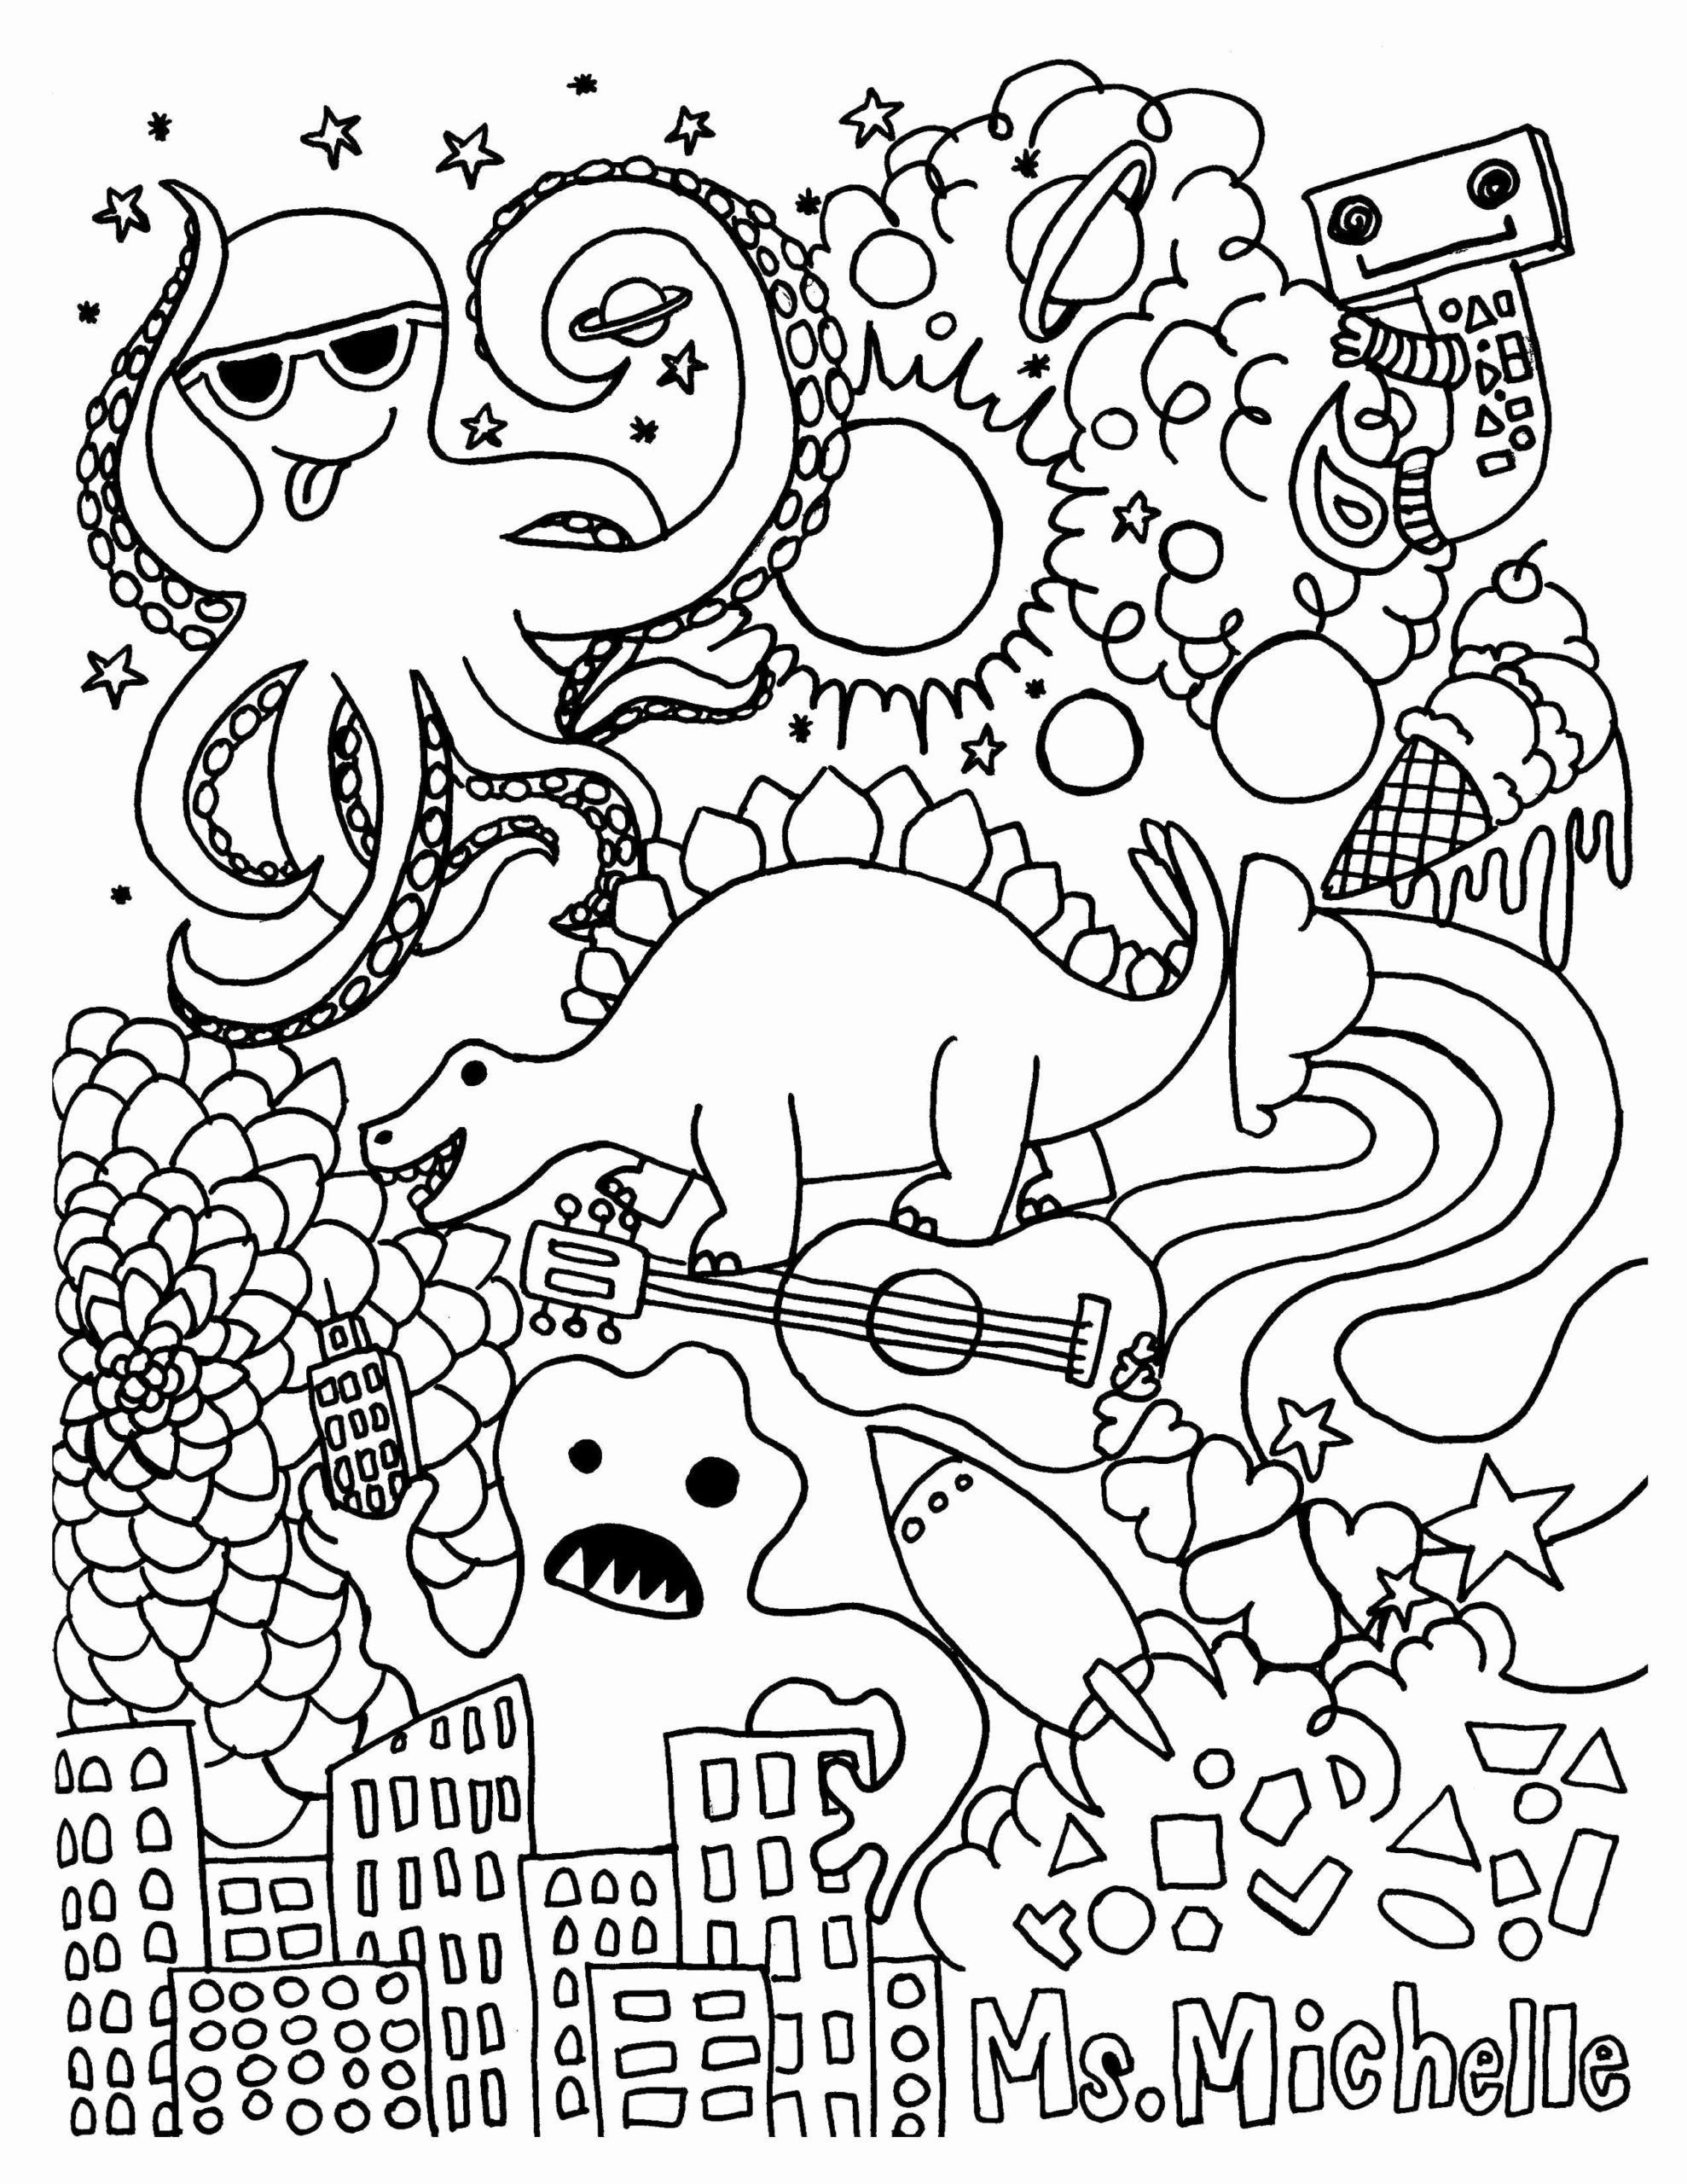 Mandala Animals Coloring Pages Coloring Pages Coloring For Numbers Best Fresh Mandala Coloring Pages Inspirational Mandala Coloring Pages Disney Coloring Pages [ jpg ]